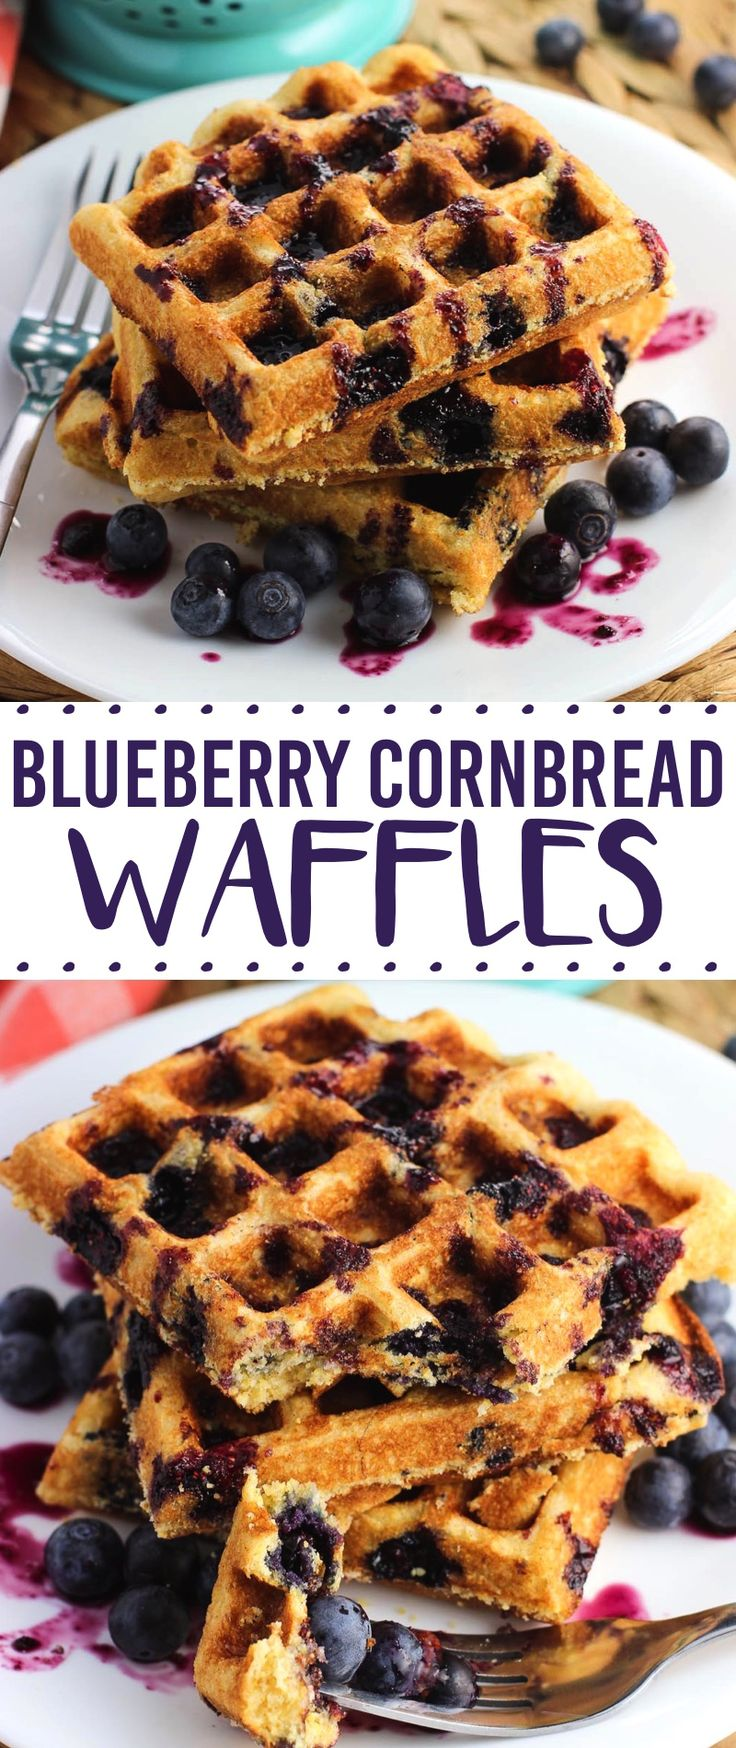 Cornbread waffles are made easy using a corn muffin mix, and feature a touch of cinnamon and fresh blueberries. The homemade blueberry maple syrup adds an extra special touch!